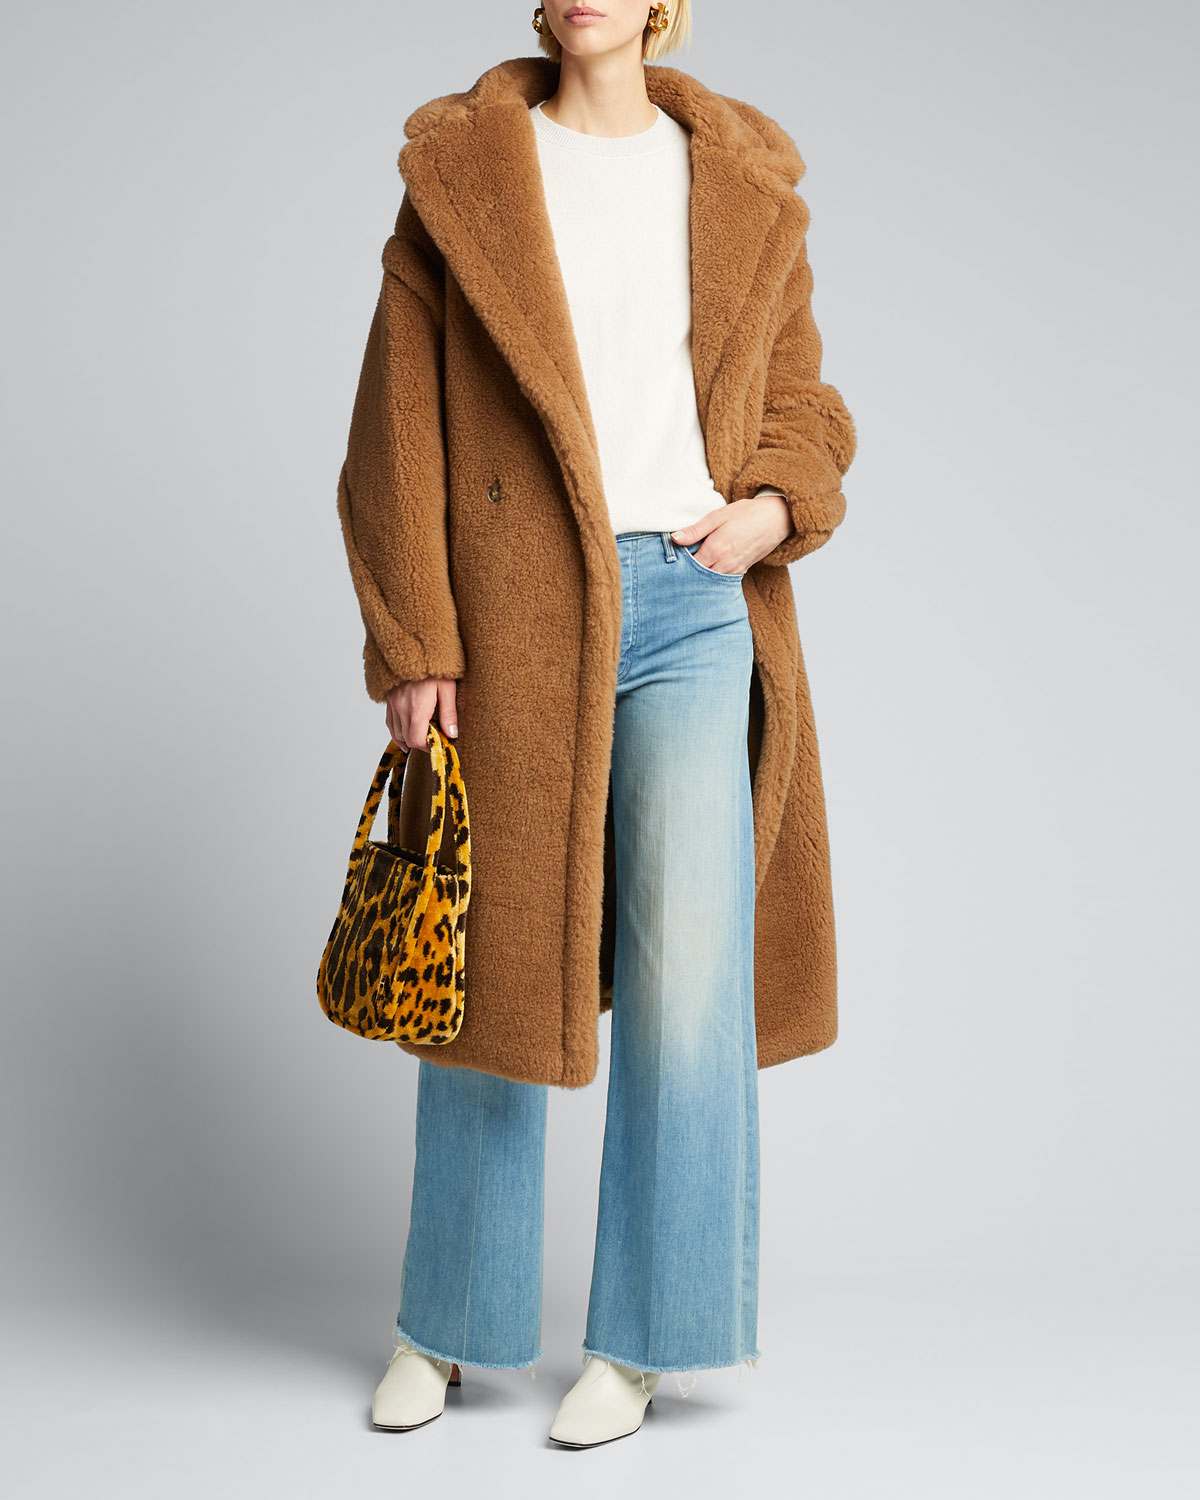 Exact Product: Kylie Jenner Brown Fur Oversized Coat Street Style Calabasas 2019, Brand: Max Mara, Available on: bergdorfgoodman.com, Price: $3590